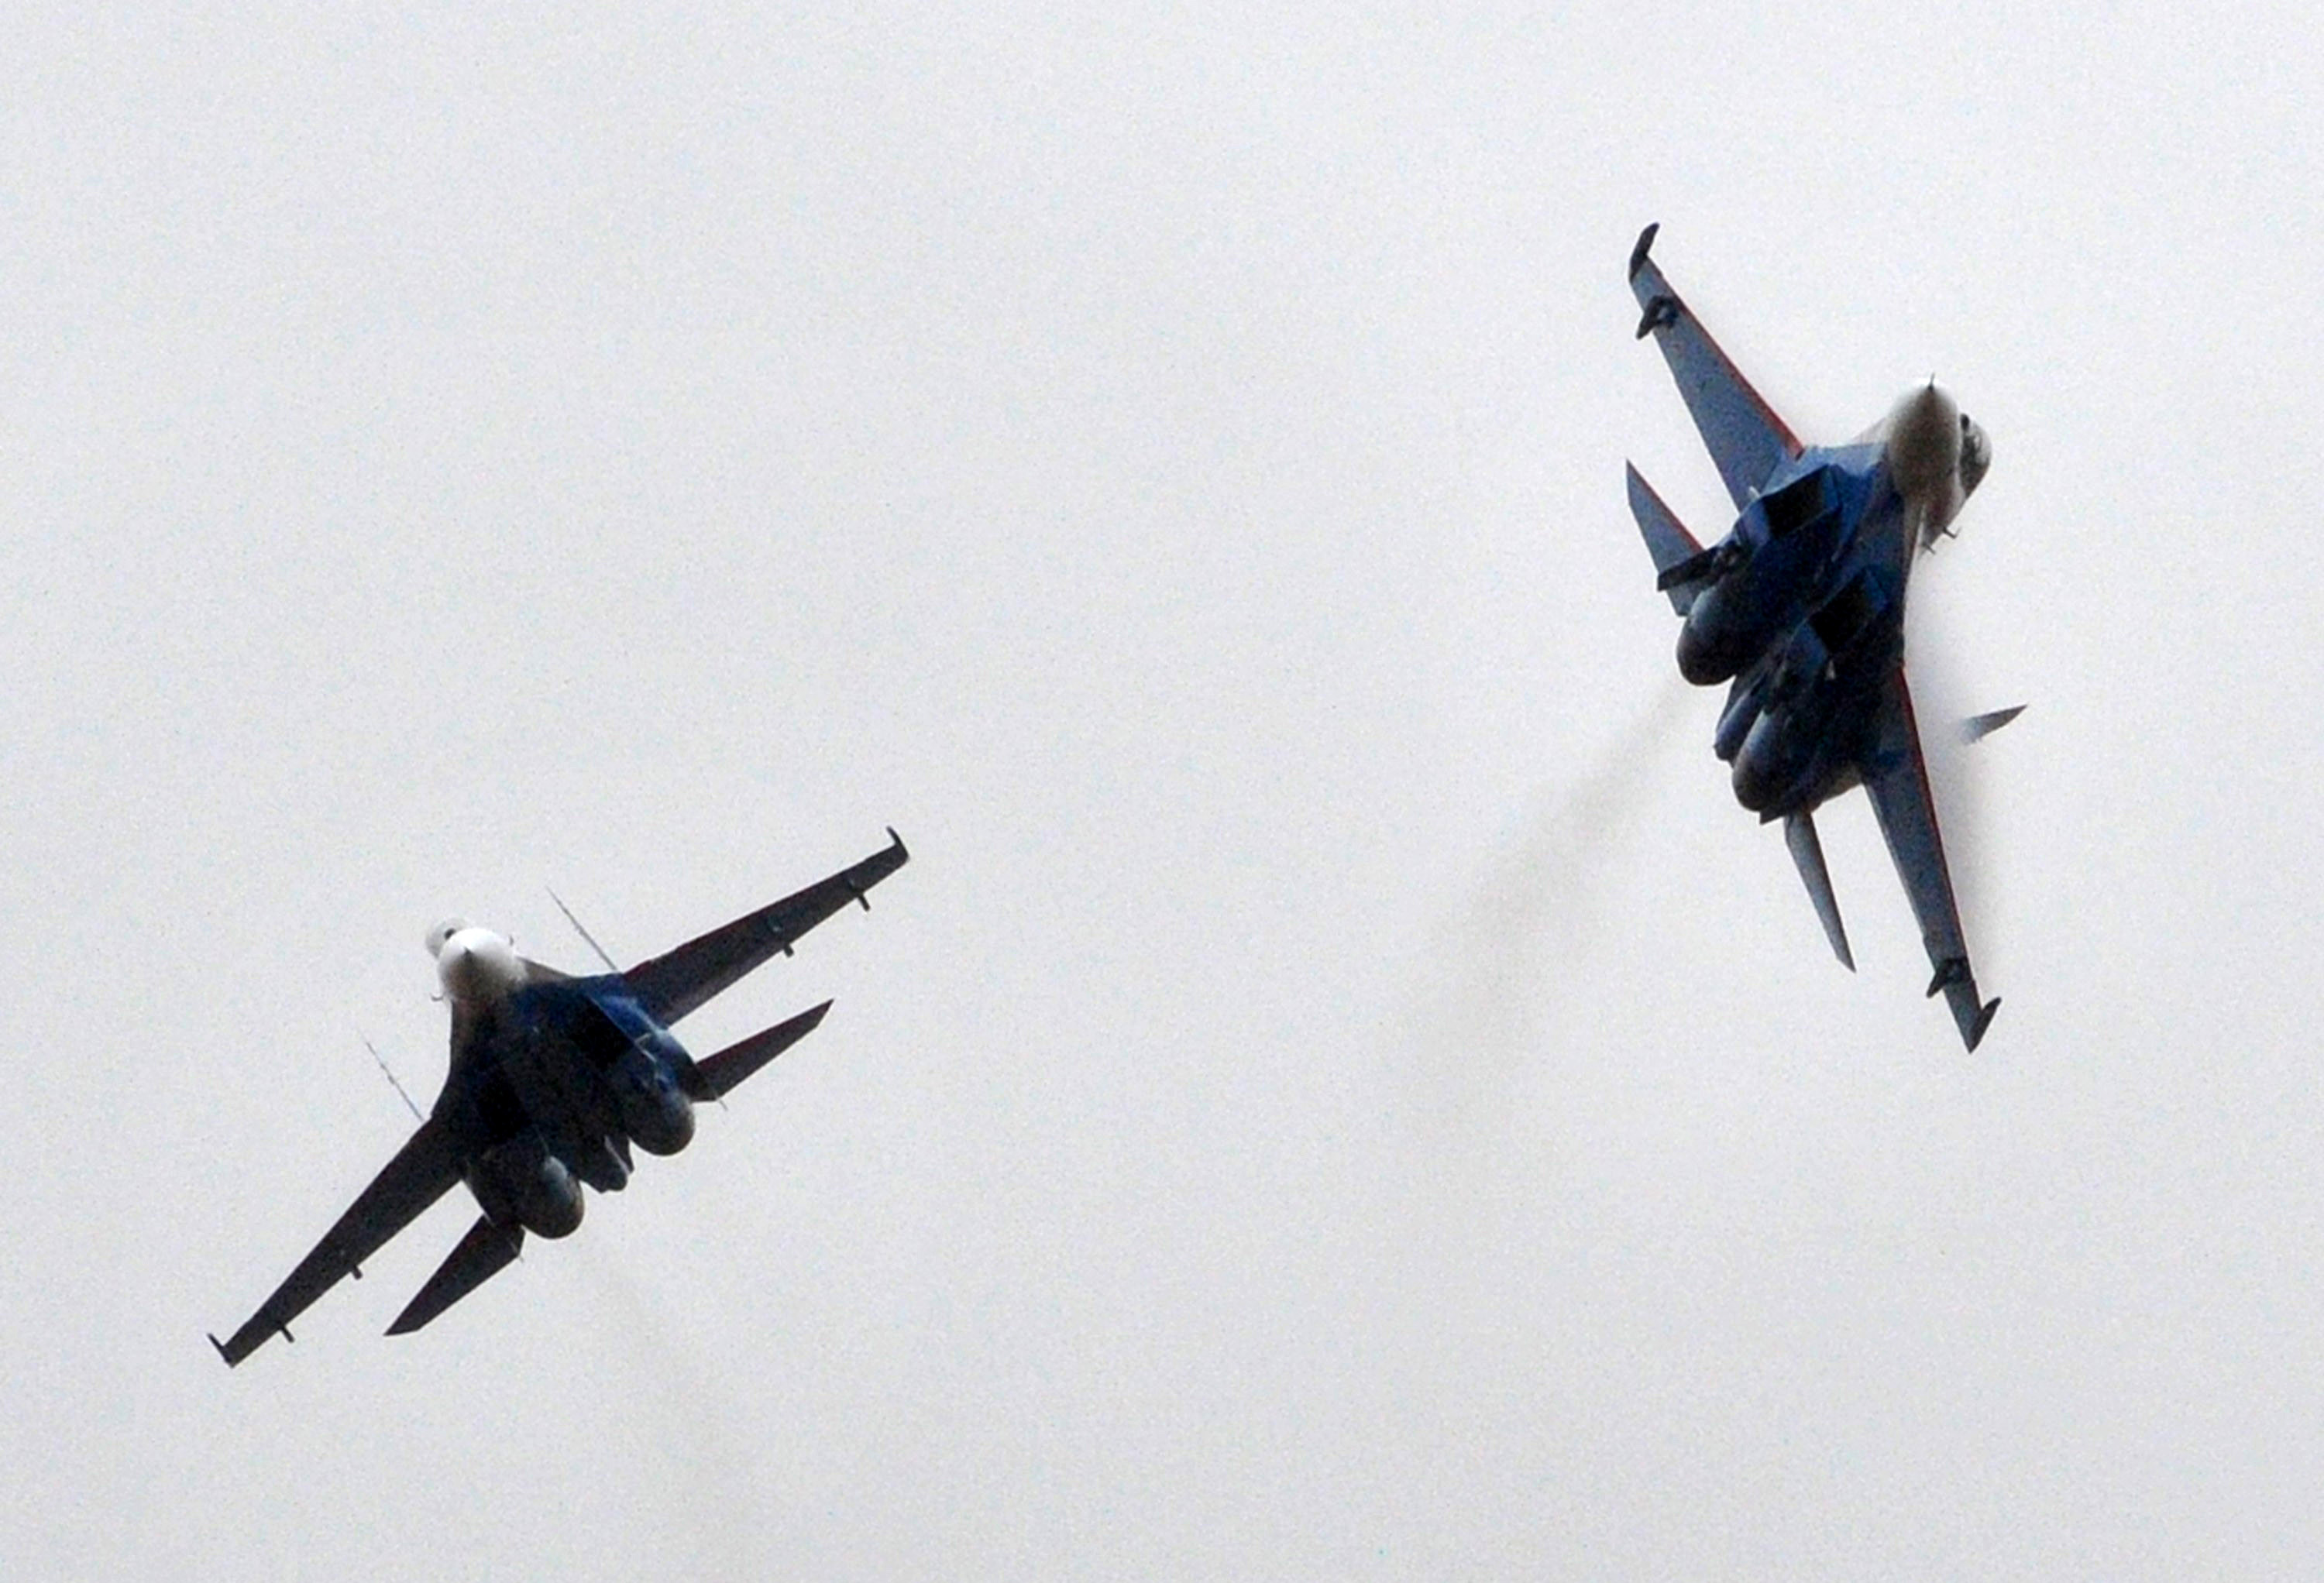 NATO Baltic jets intercept Russian airplanes for third day